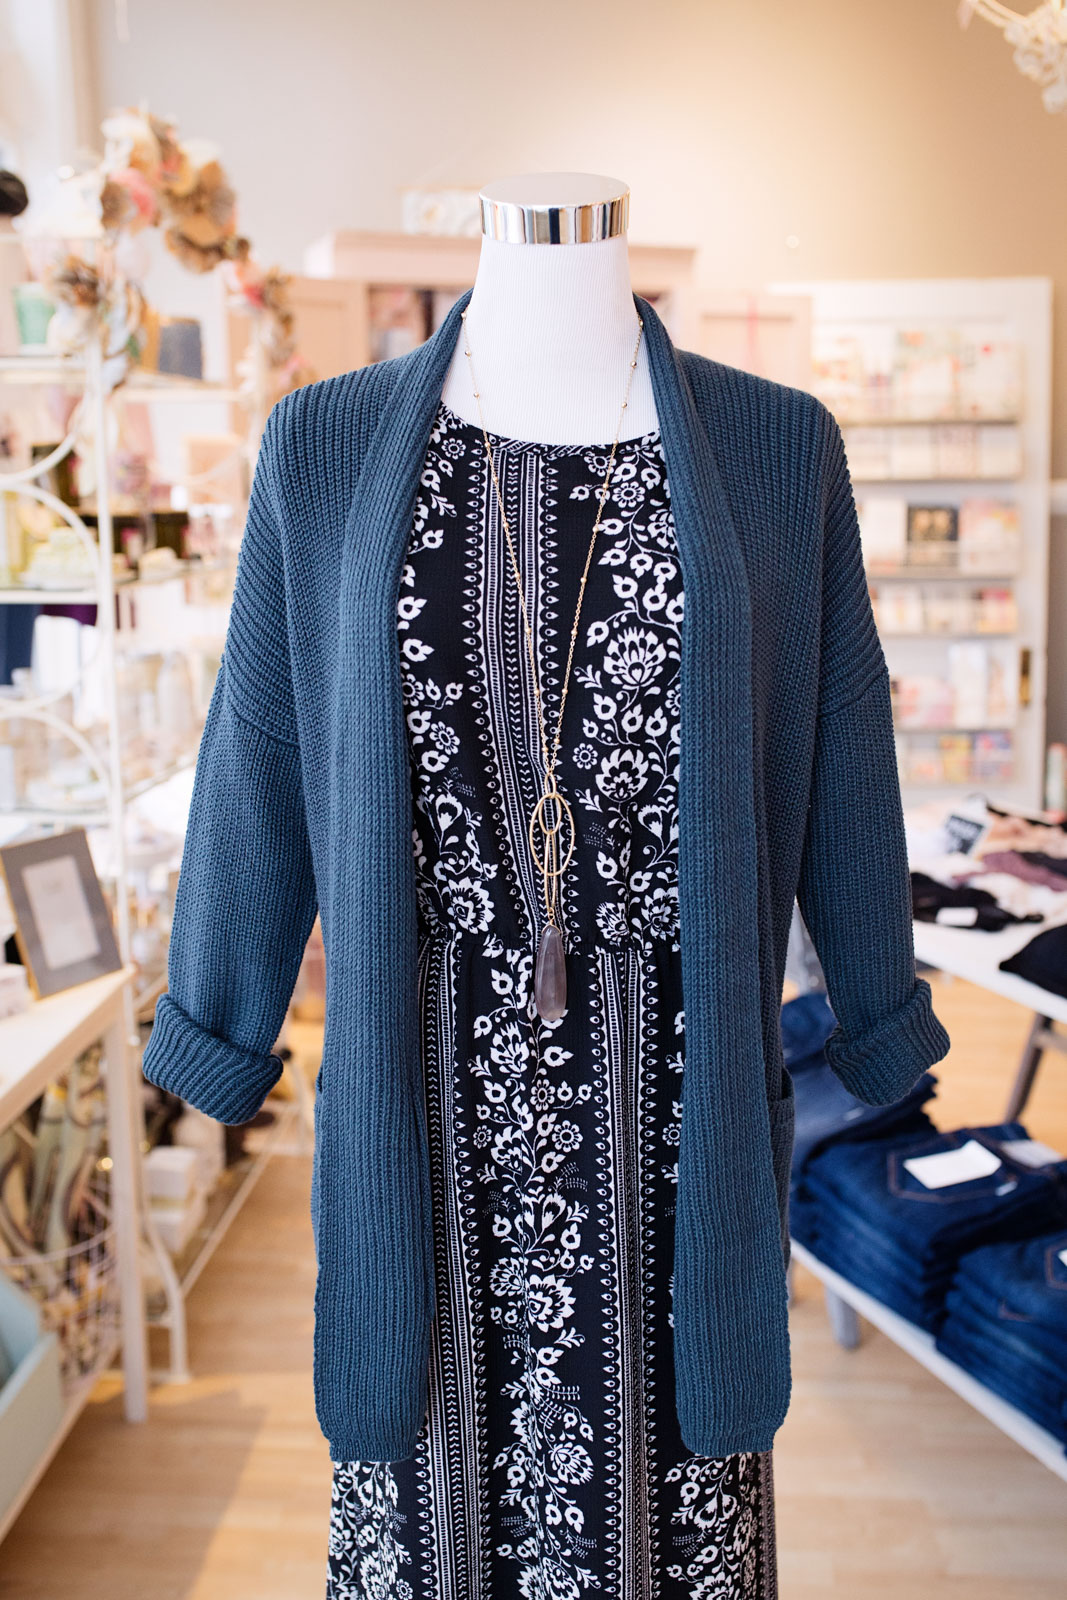 Meadow boutique seattle retail clothing store Yuliya Rae photography branding services-21.jpg